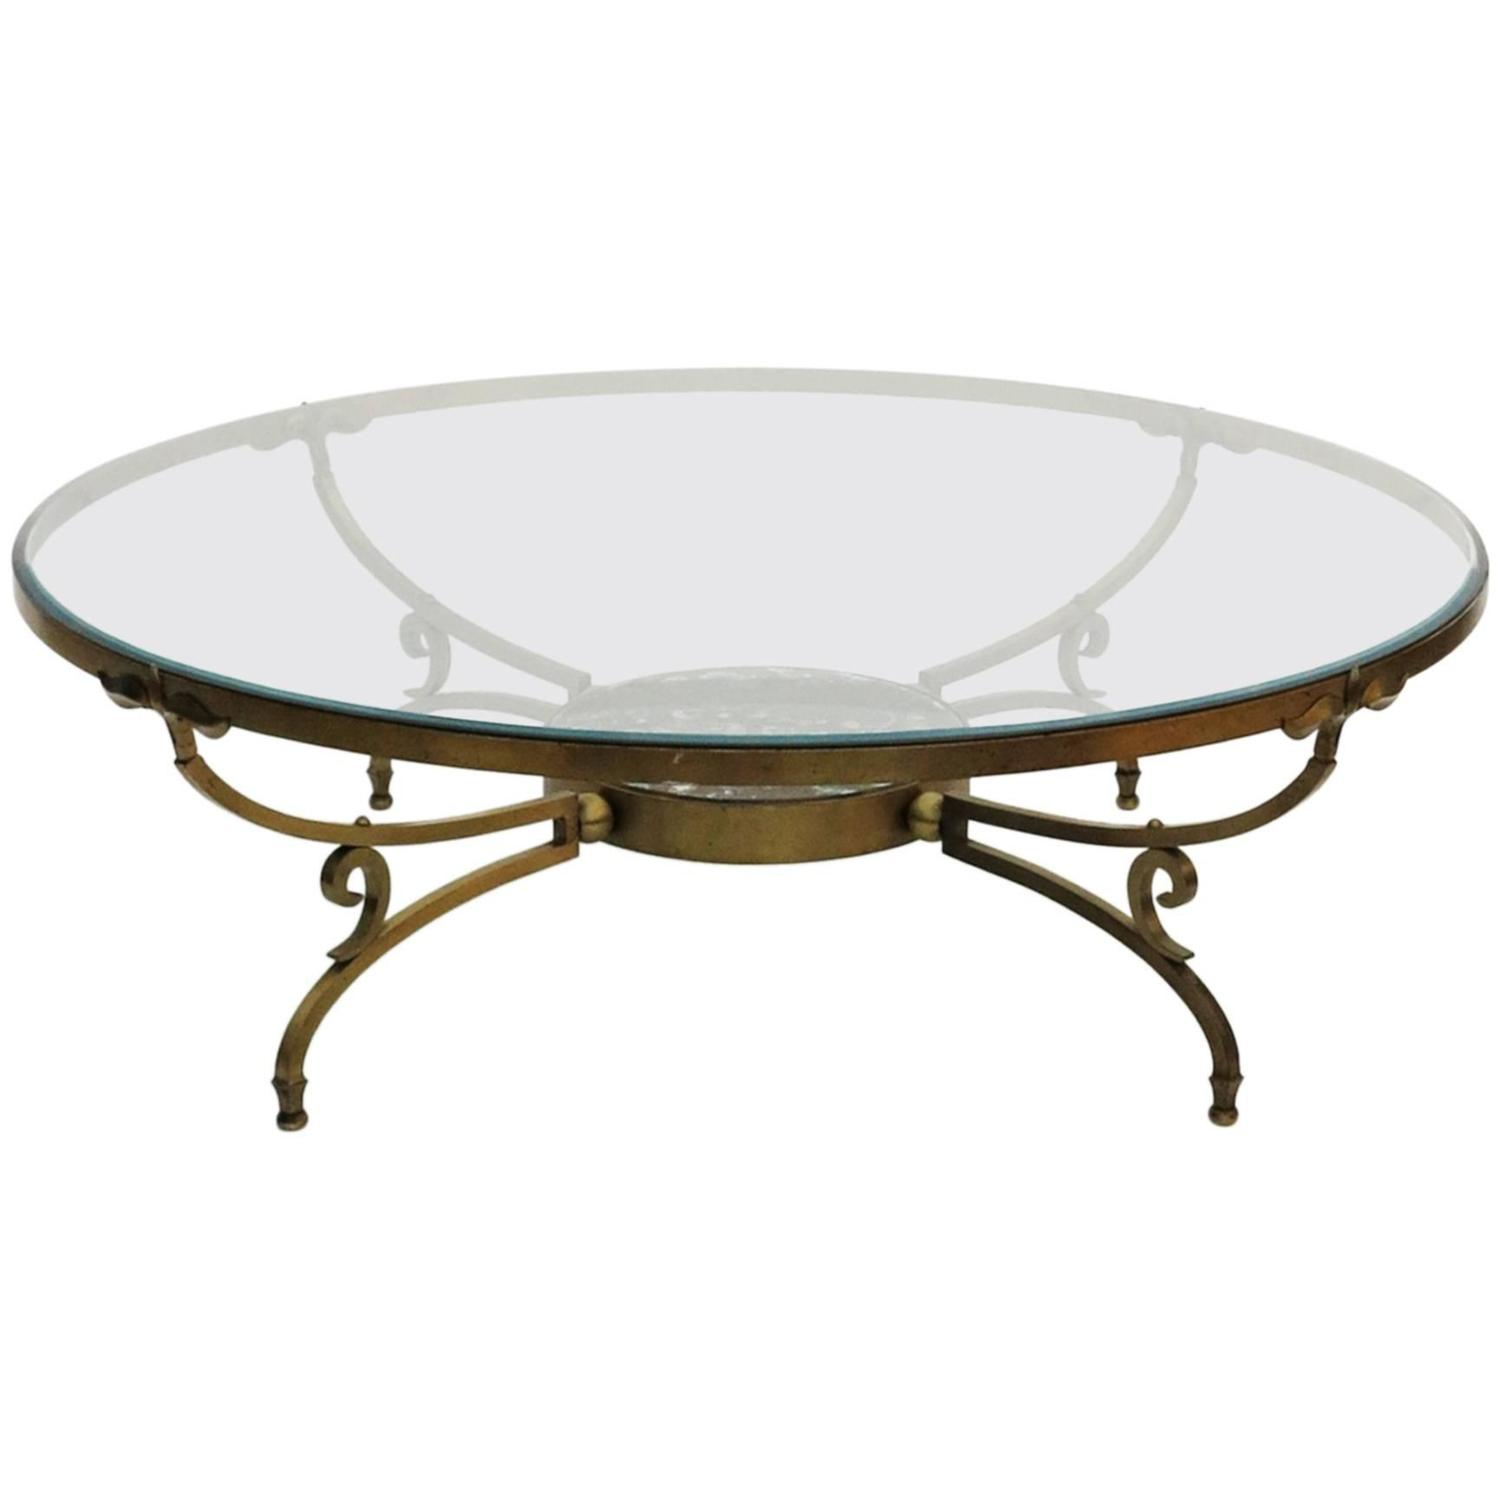 Round bronze and glass coffee table by arturo pani at 1stdibs geotapseo Images